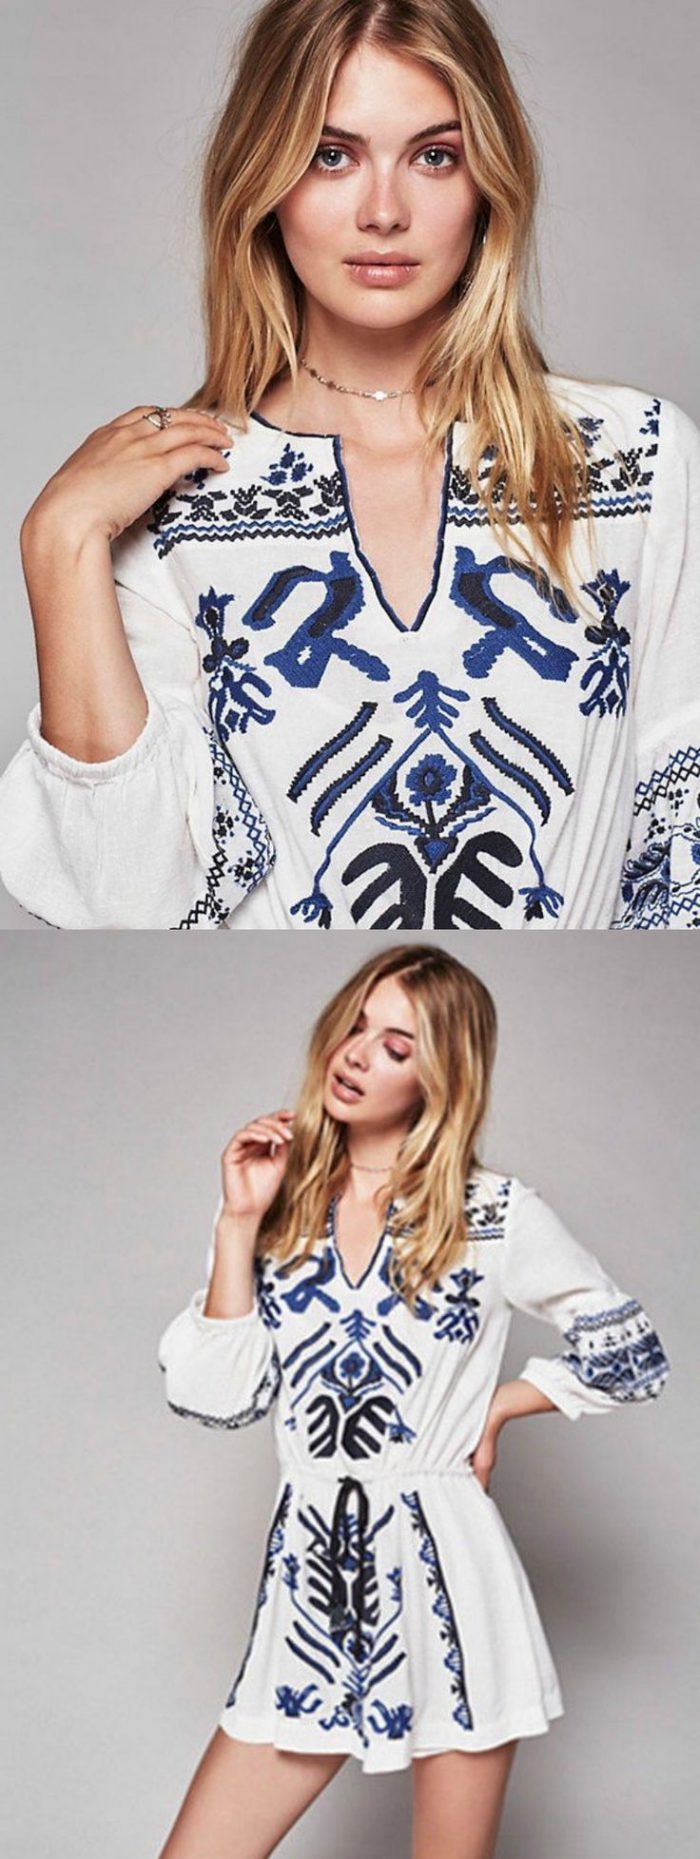 Embroidery Trend For Women 2021